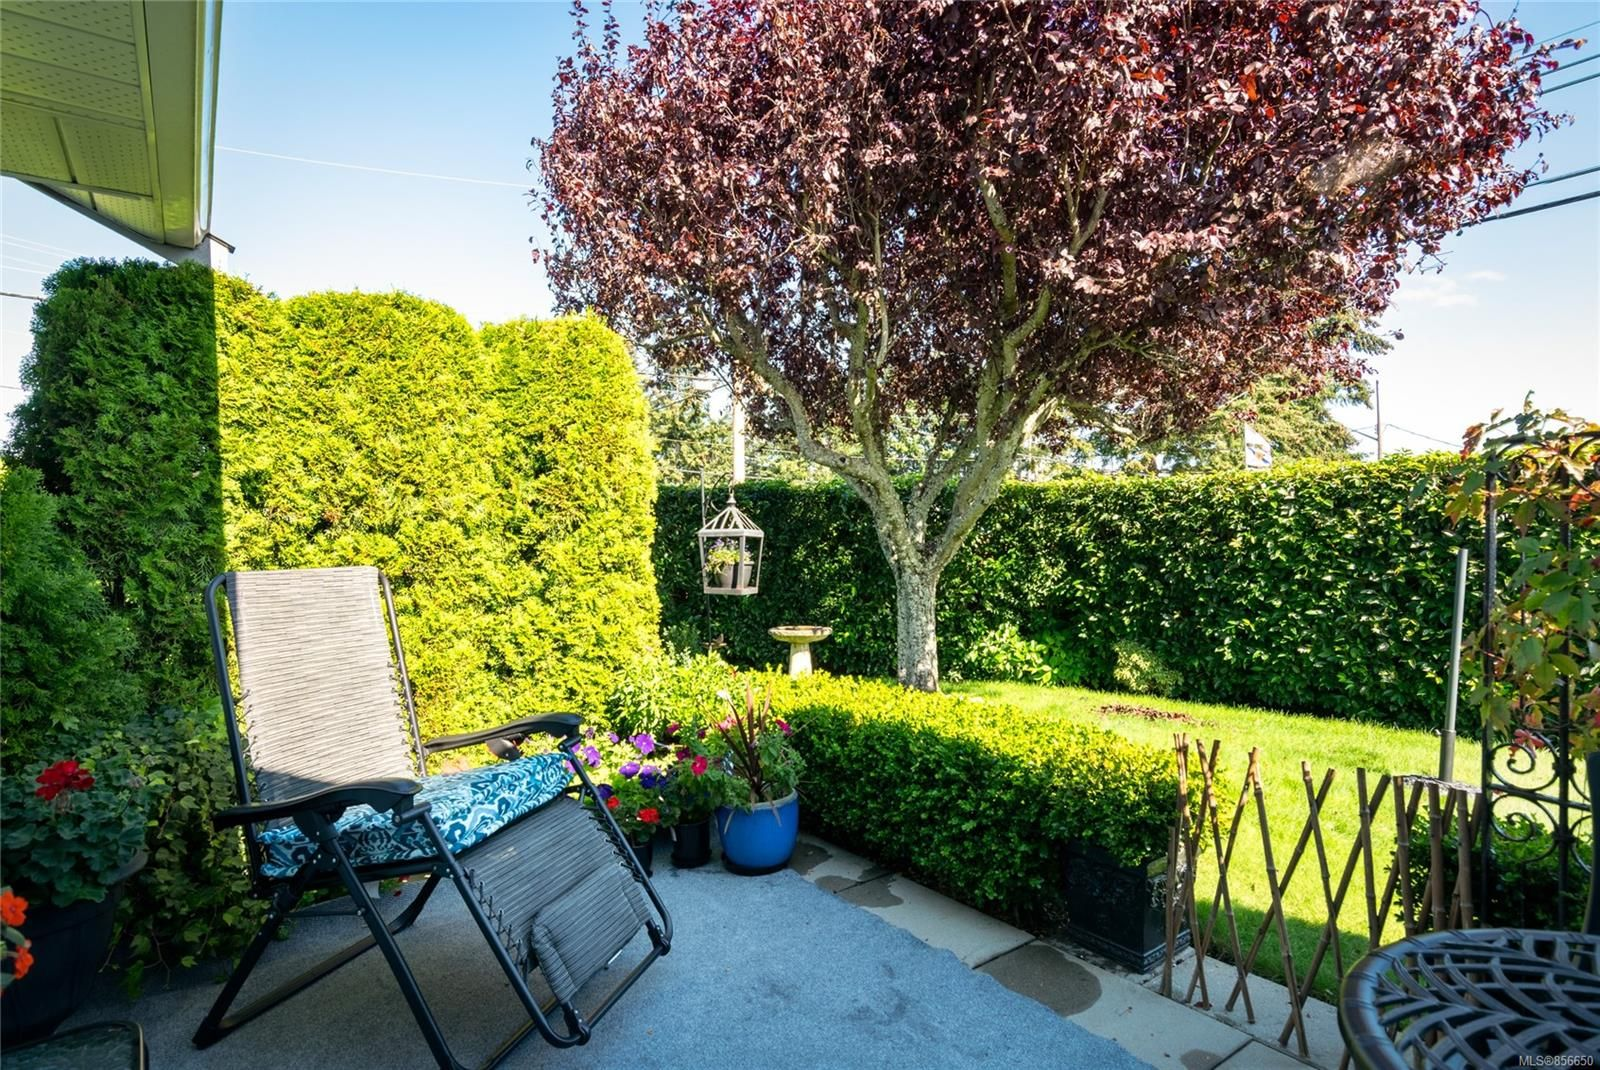 Photo 20: Photos: 4 305 Blower Rd in : PQ Parksville Row/Townhouse for sale (Parksville/Qualicum)  : MLS®# 856650